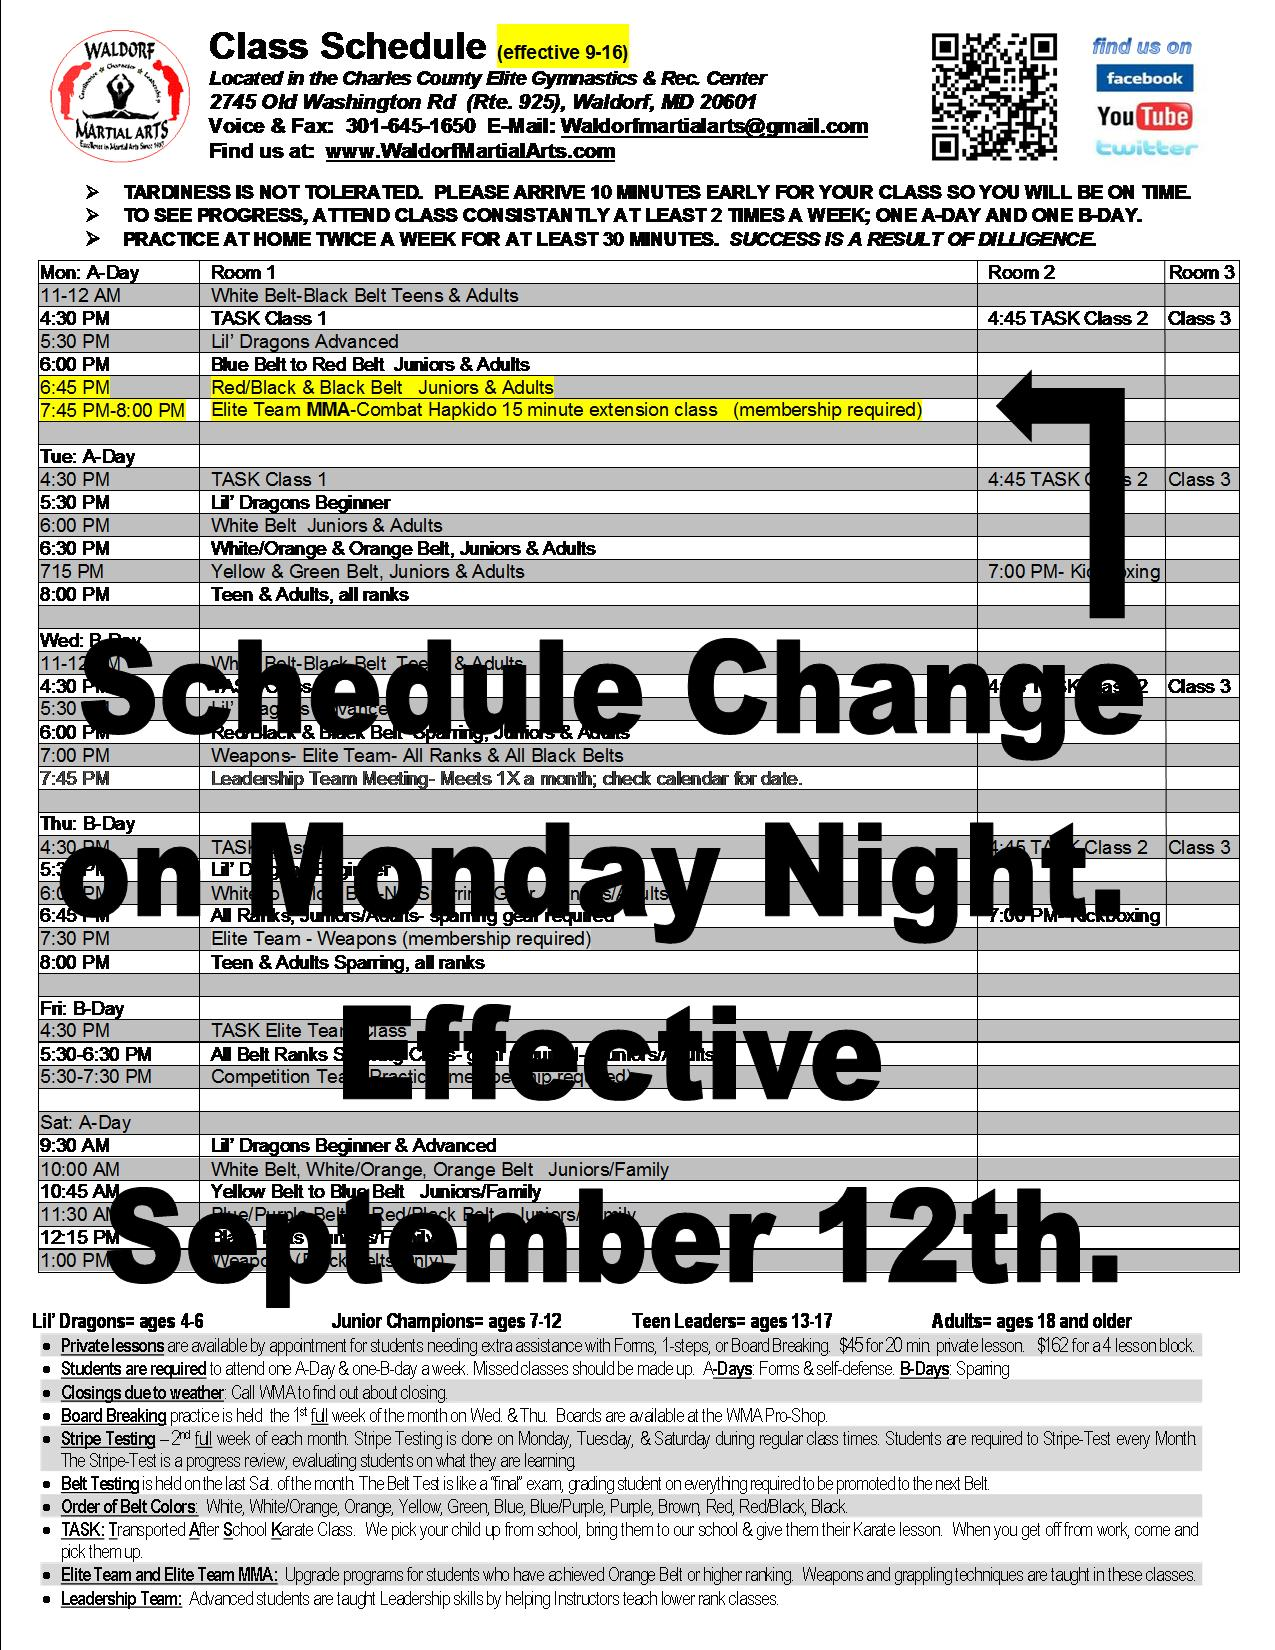 2016 Class Schedule Effective Sept 12 FLYER NOTICE